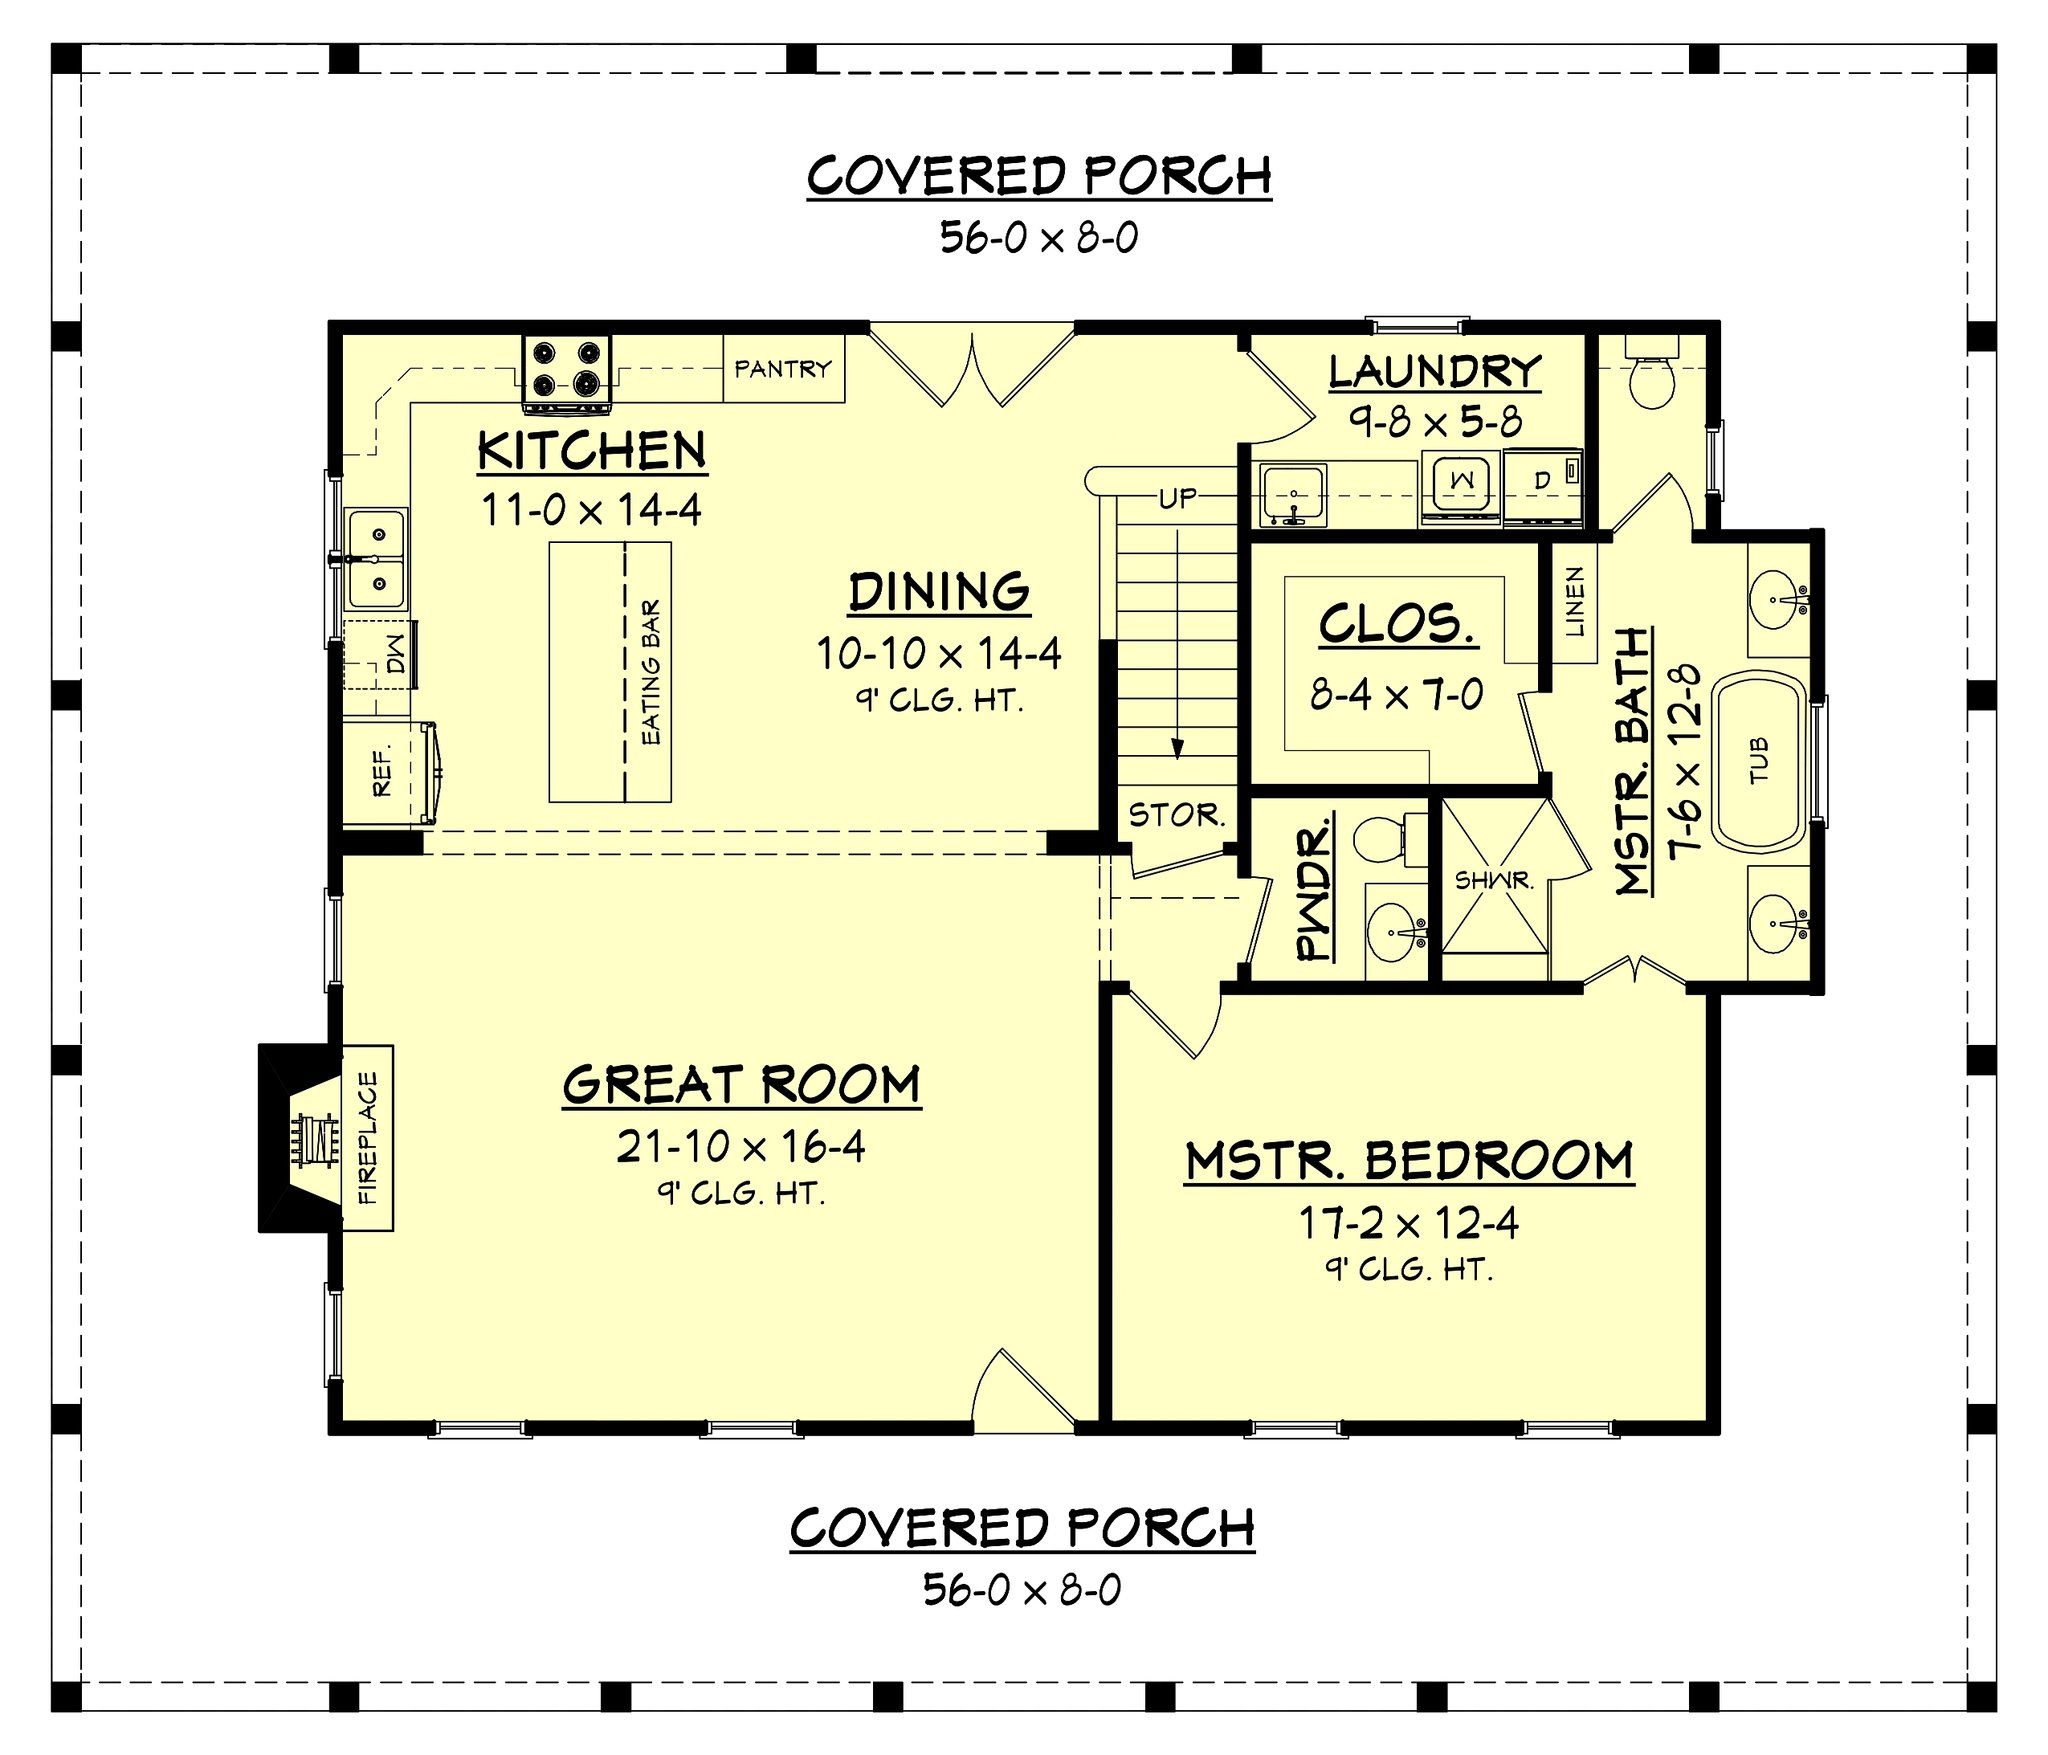 Perkins Country House Plan Perfect Reverse Front To Rear So - House designs with master bedroom at rear